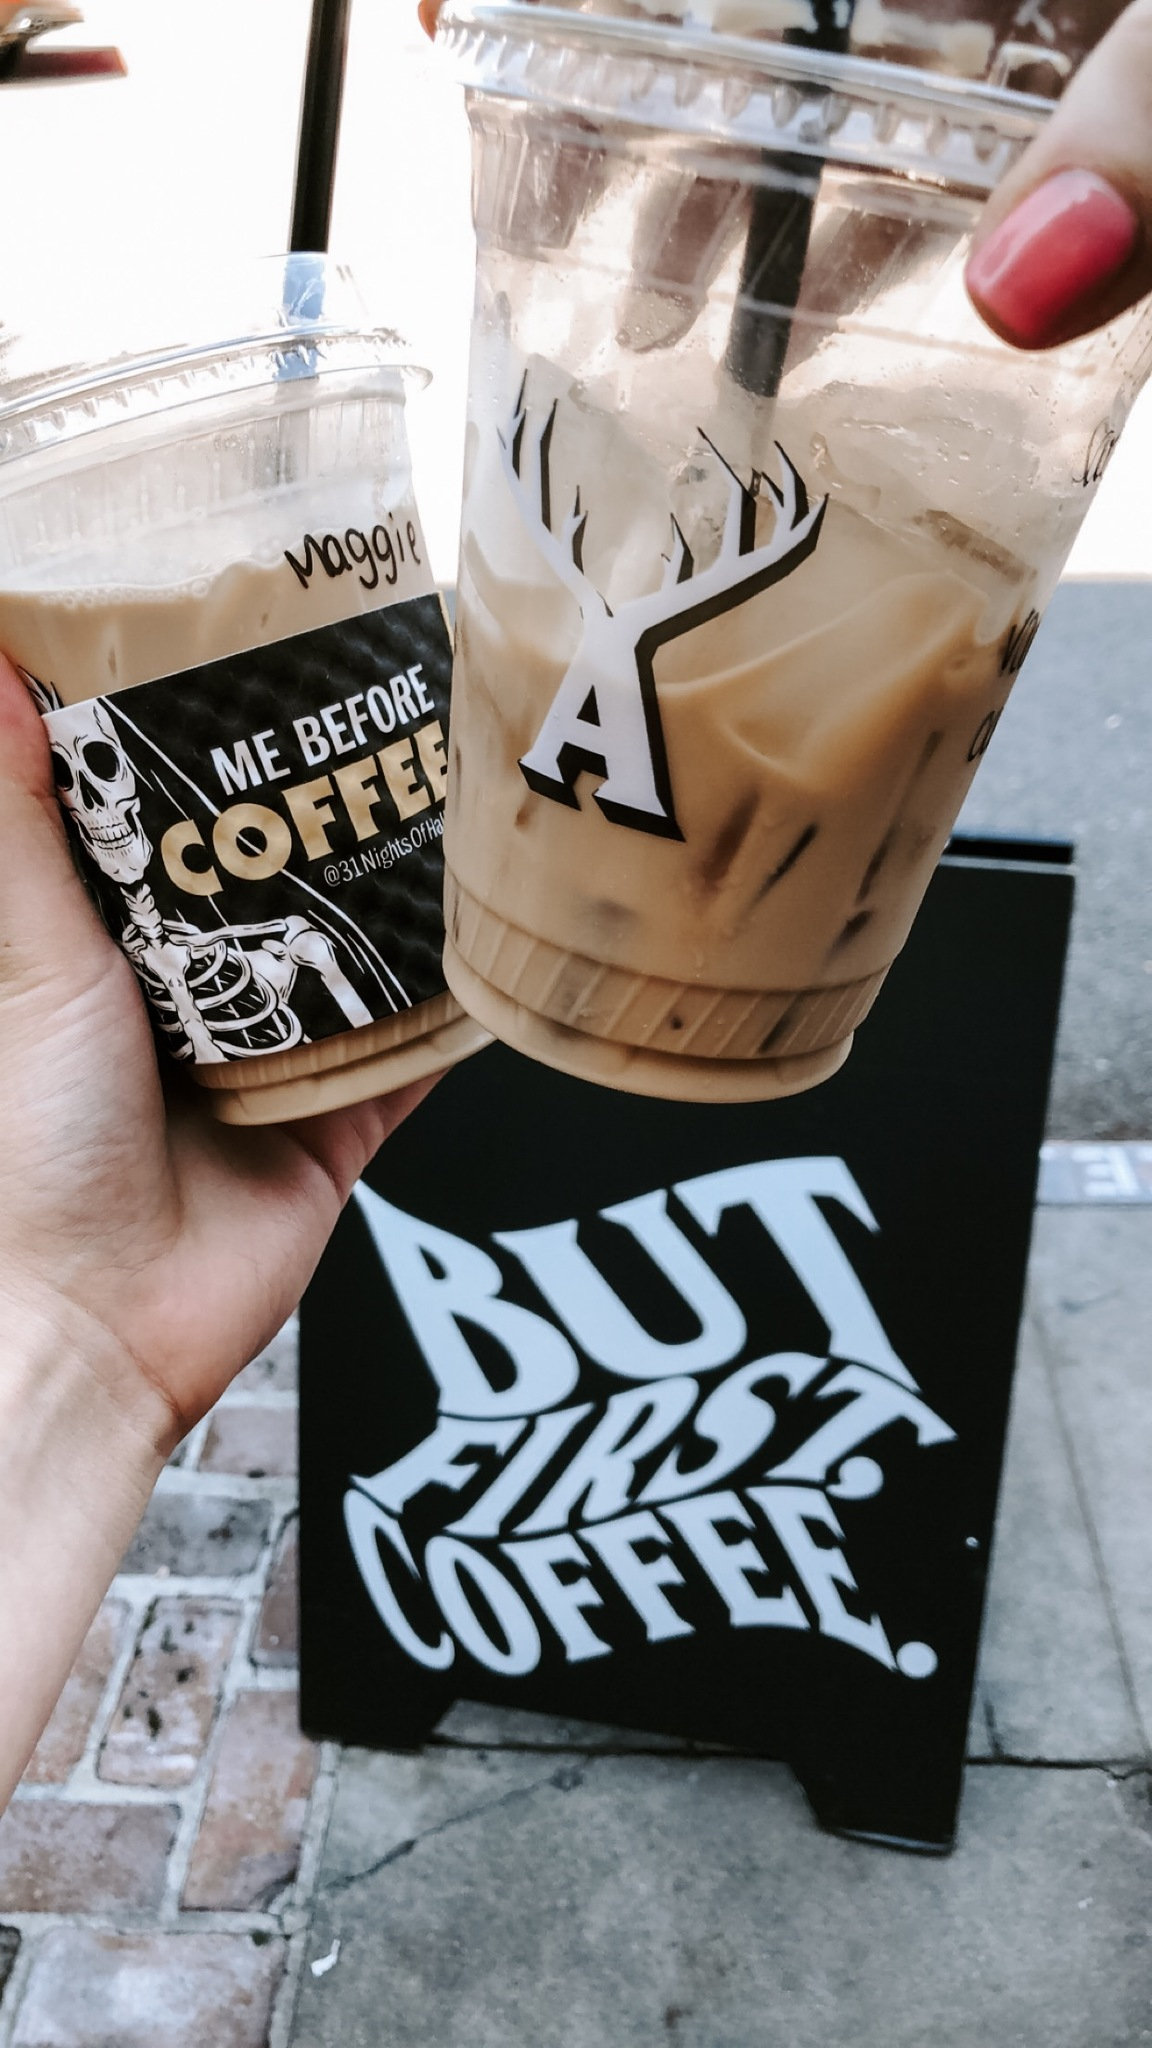 Alfred's Coffee! It's honestly some of the best coffee I have tried!